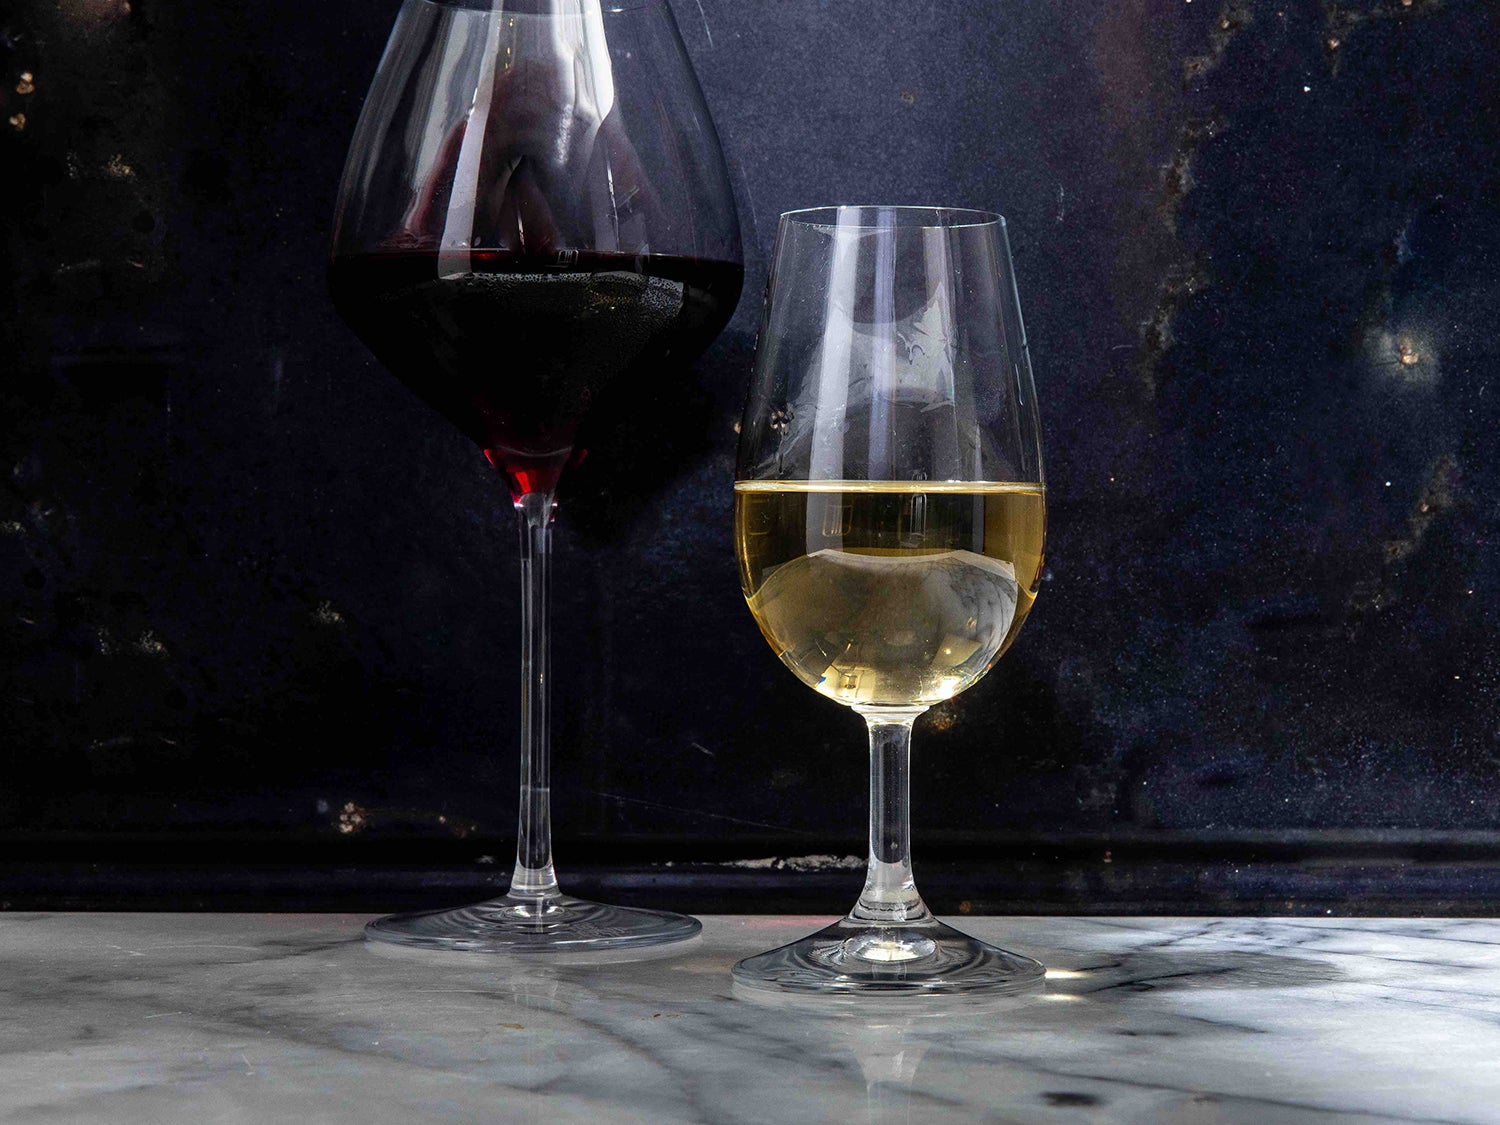 Tiny Wine Glasses Have Won Us Over. Here's Why